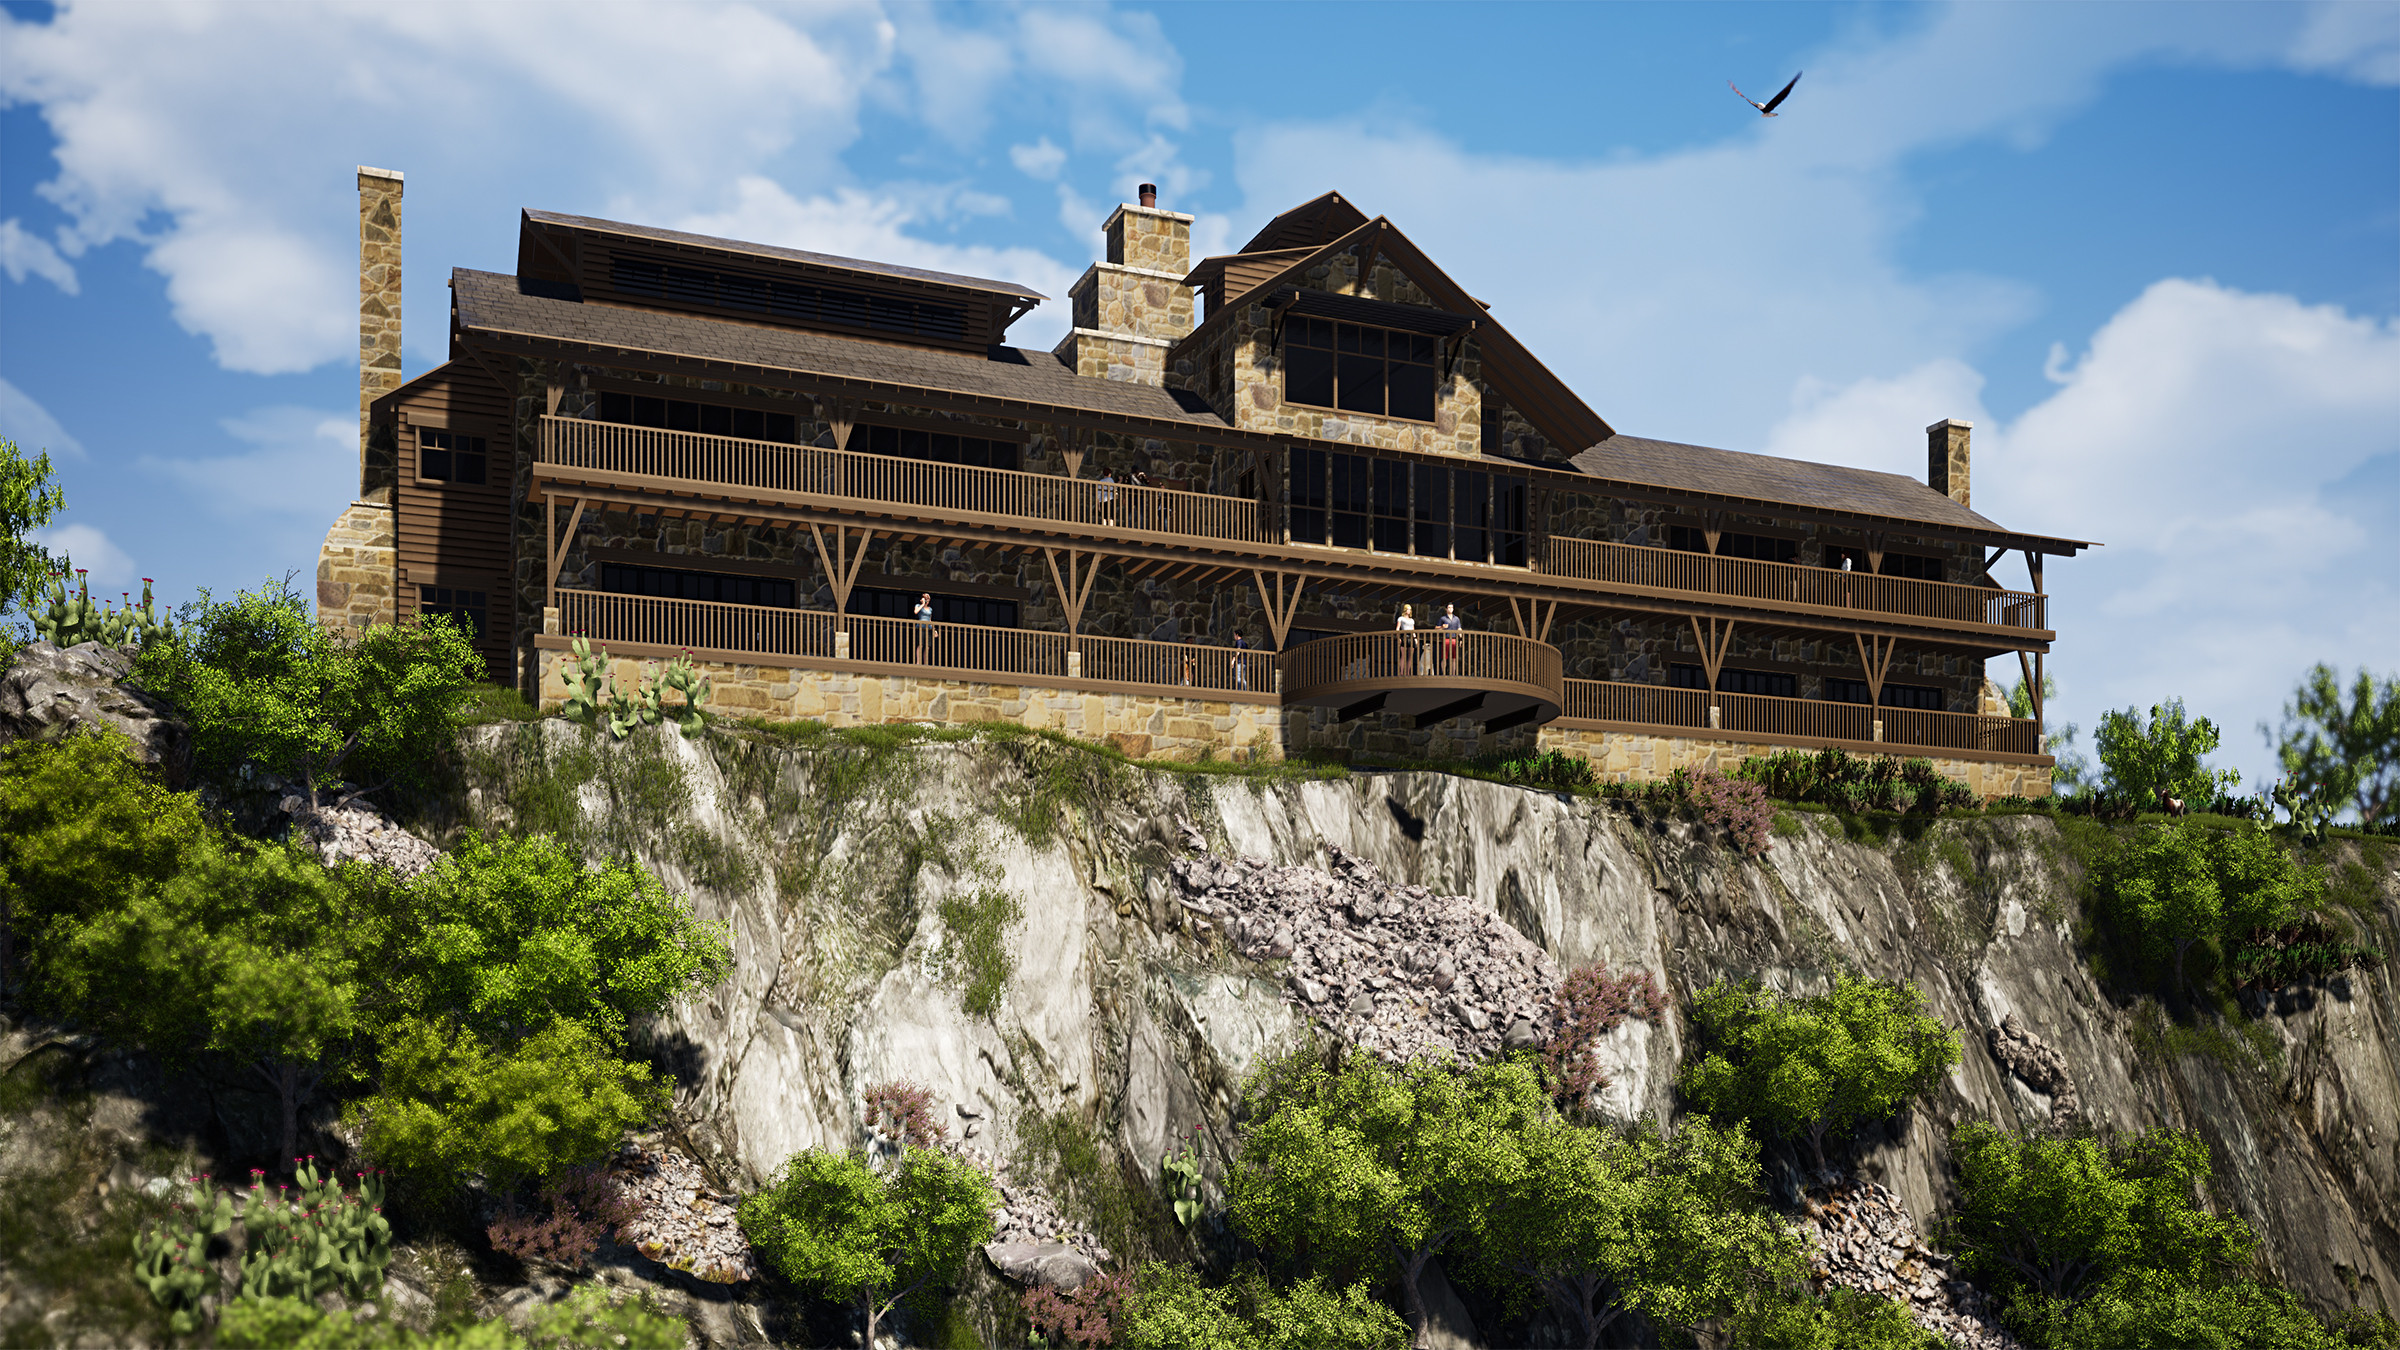 The Overlook Guest Lodge (Under Construction)